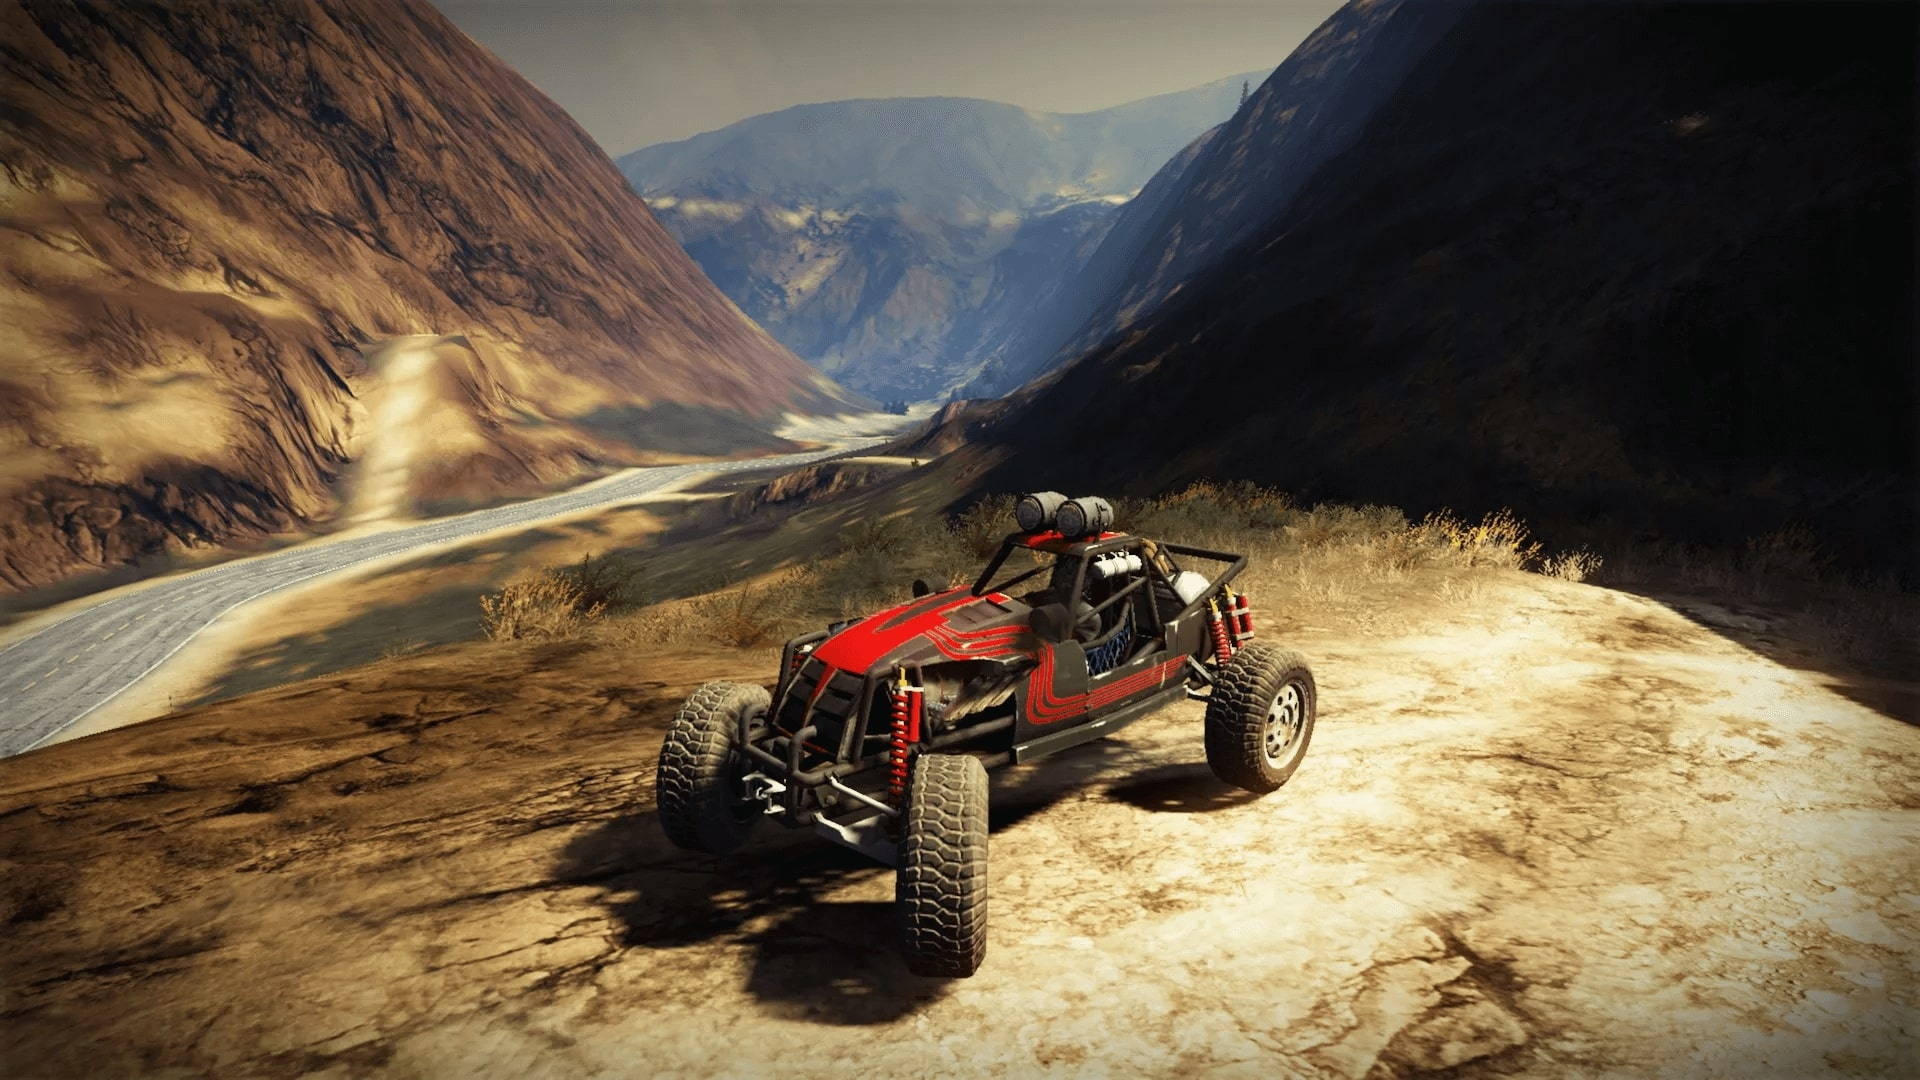 Fuel has a huge open world, but it doesn't make sense, because there aren't many activities in the game